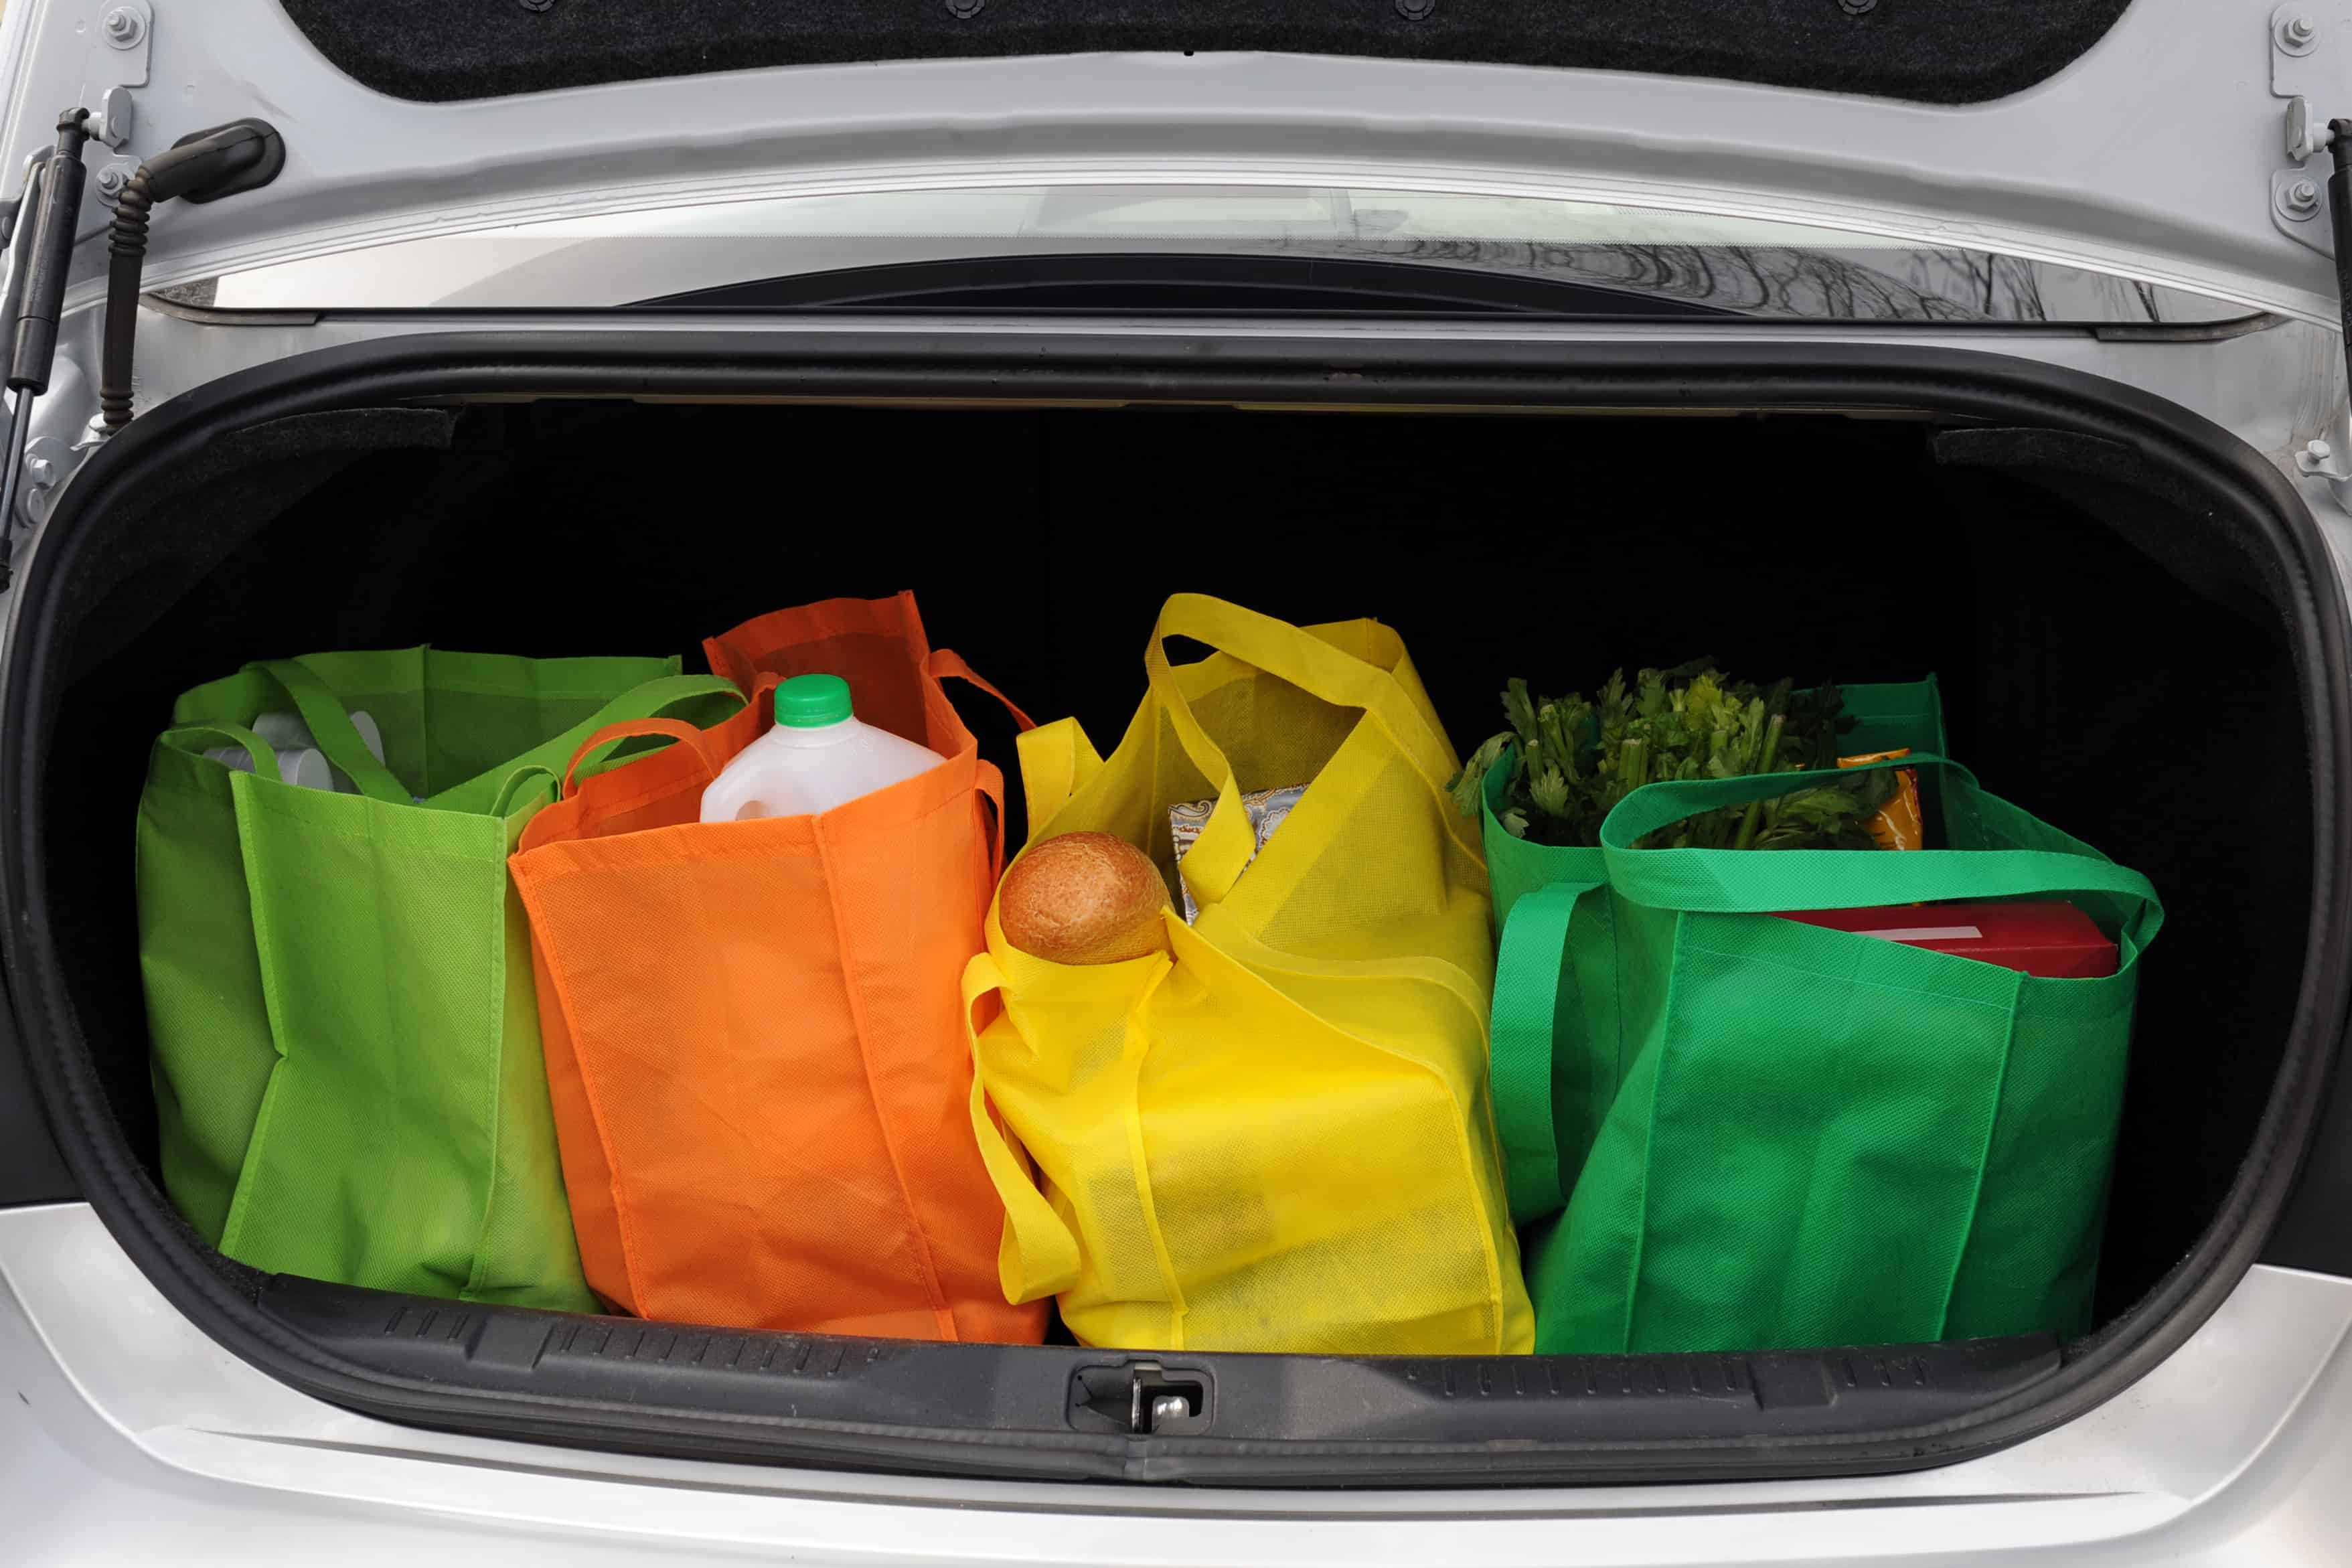 Four colorful eco-friendly shopping bags filled mostly with groceries in the trunk of a car.